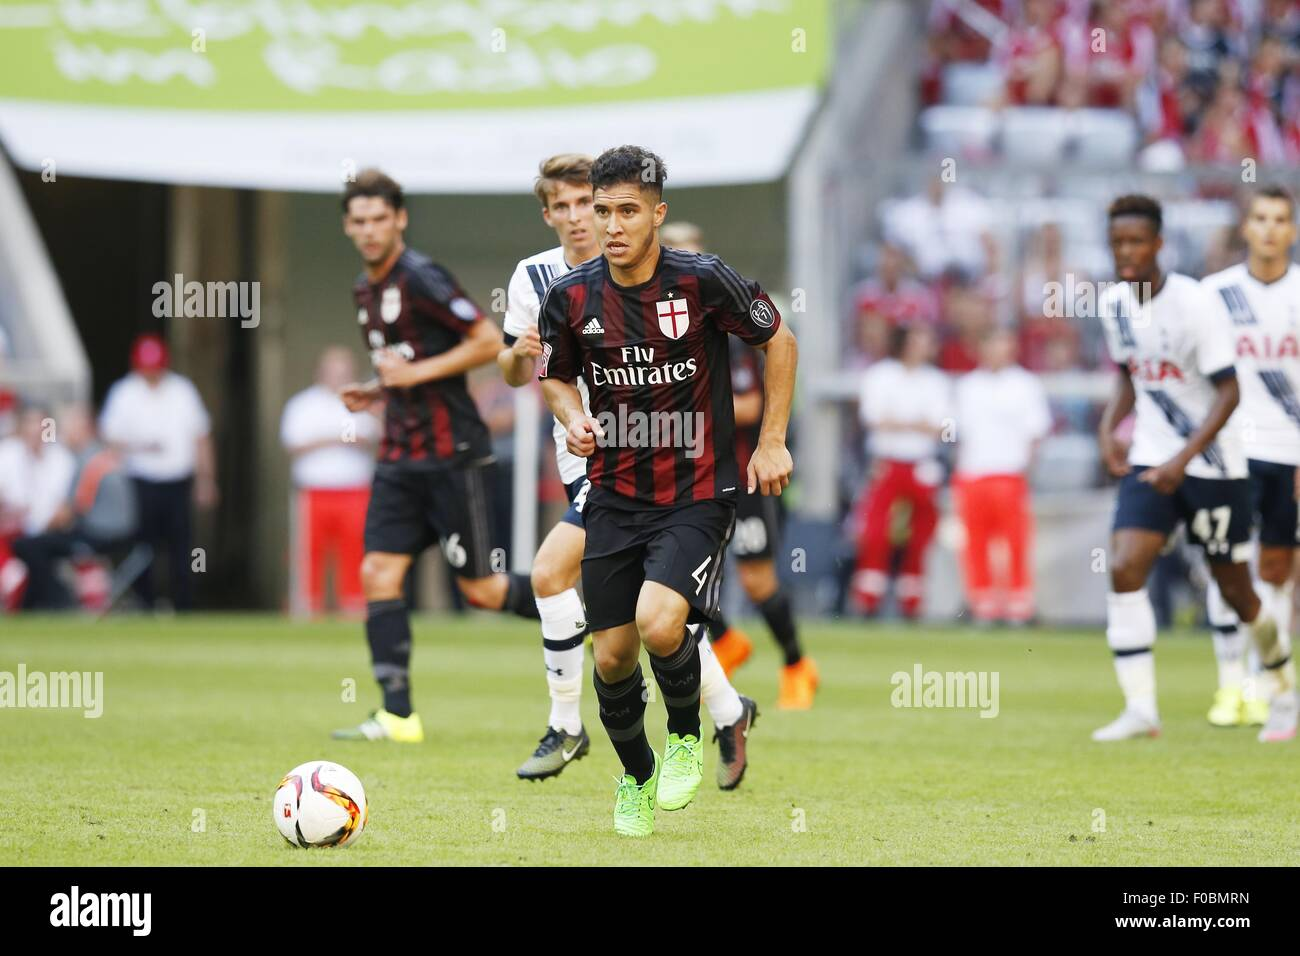 Jose Mauri High Resolution Stock Photography and Images - Alamy